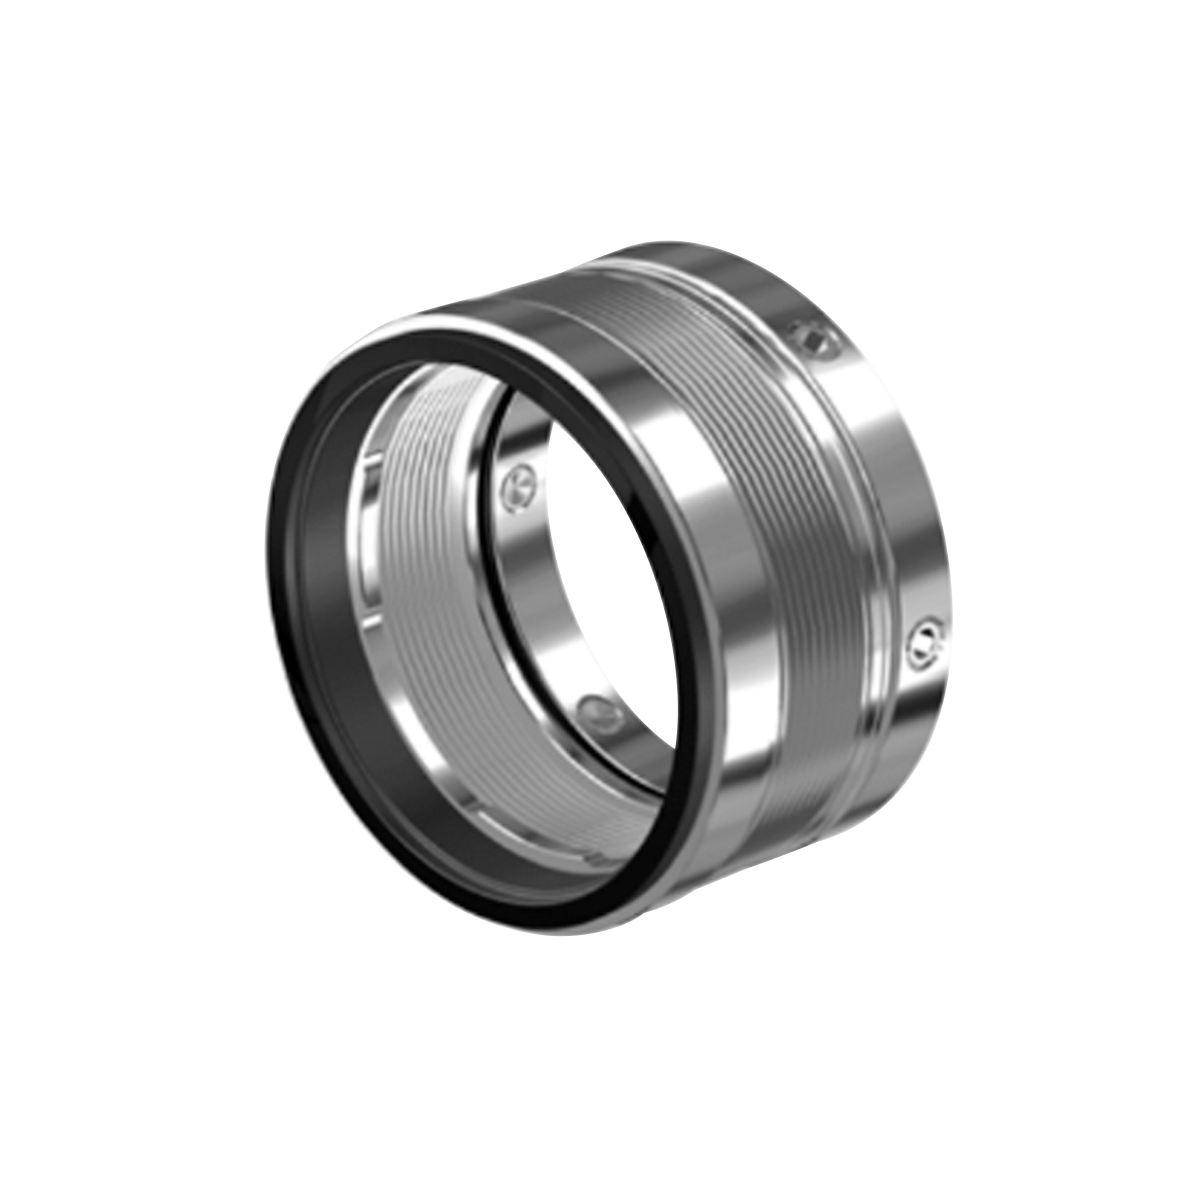 Thomson TBS Component Seal